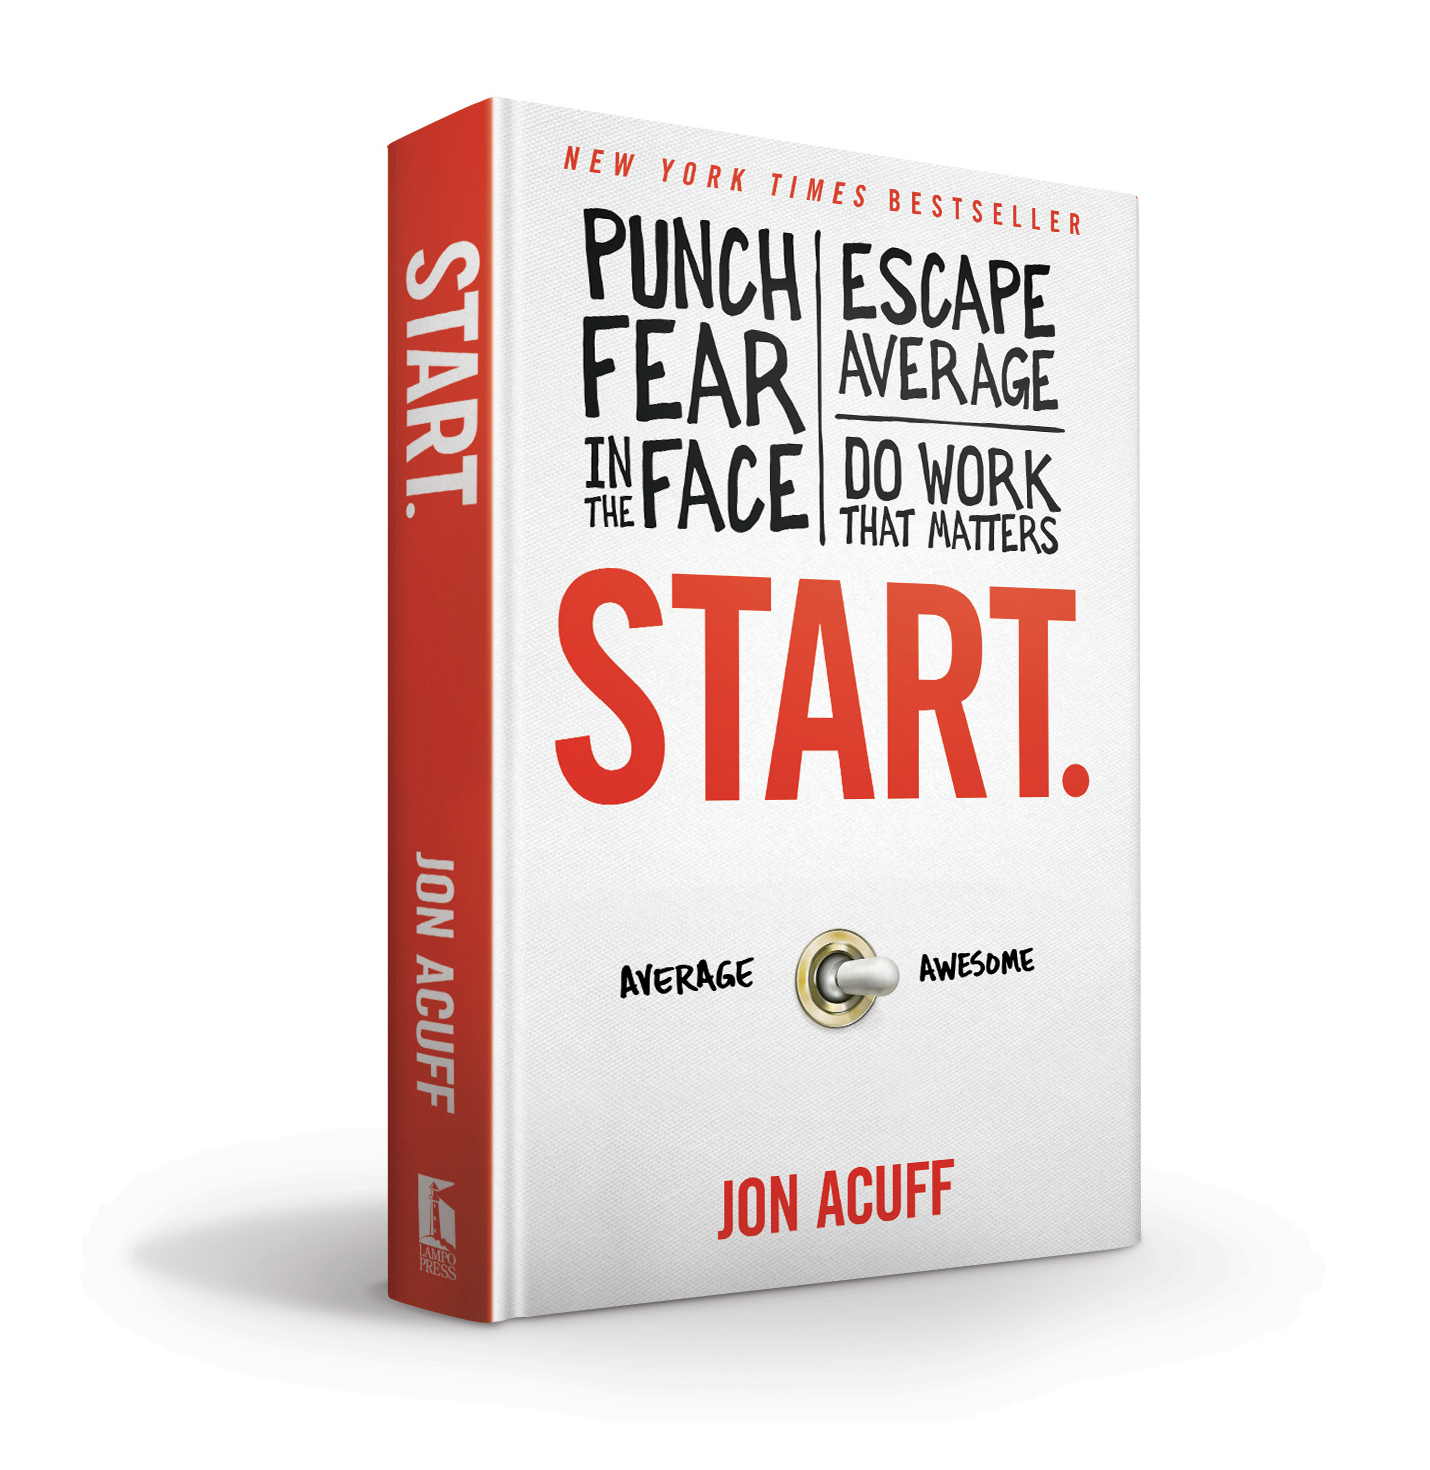 Business Book Cover Jobs ~ Jon acuff s latest book start debuts at on the new